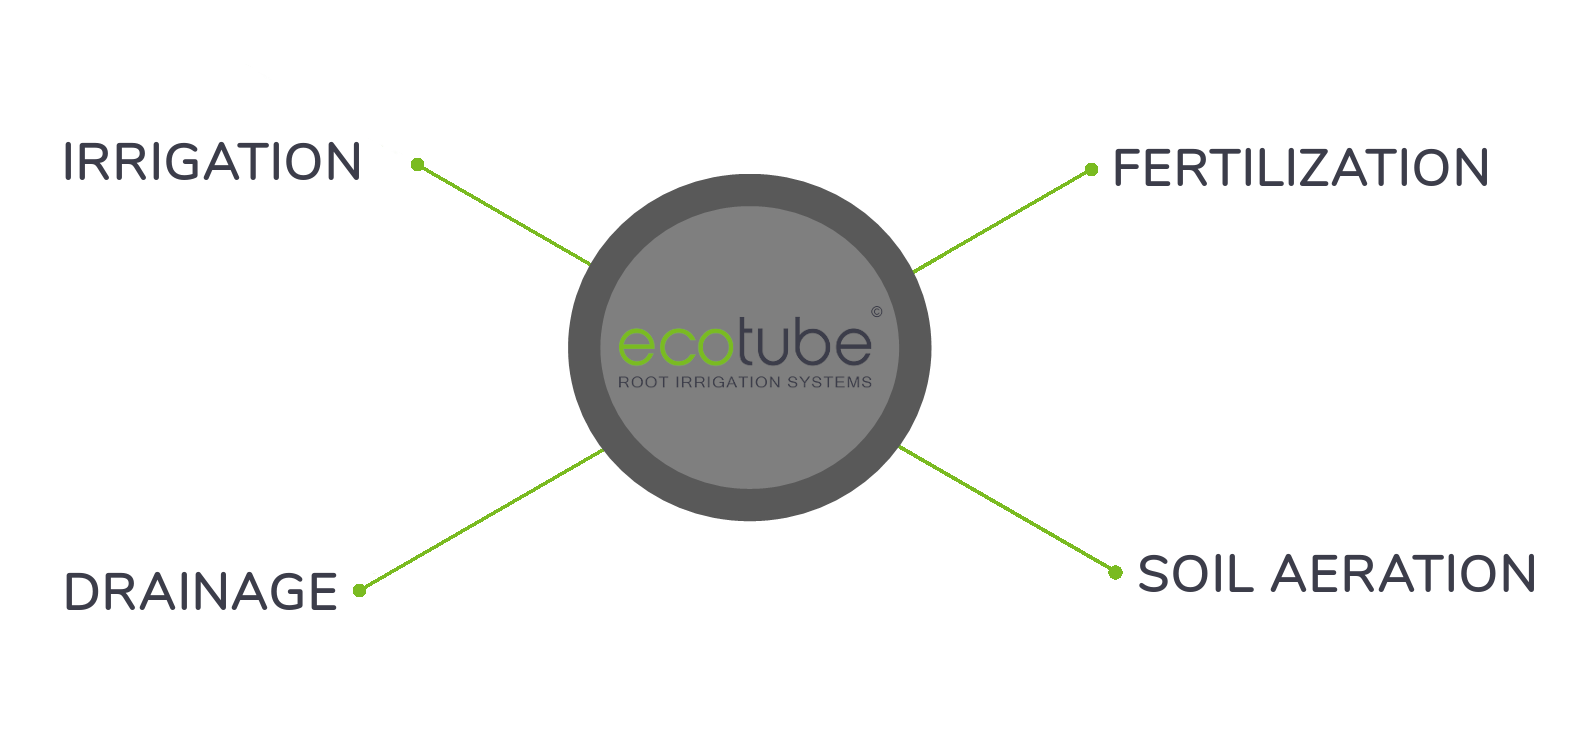 ecotube featuers